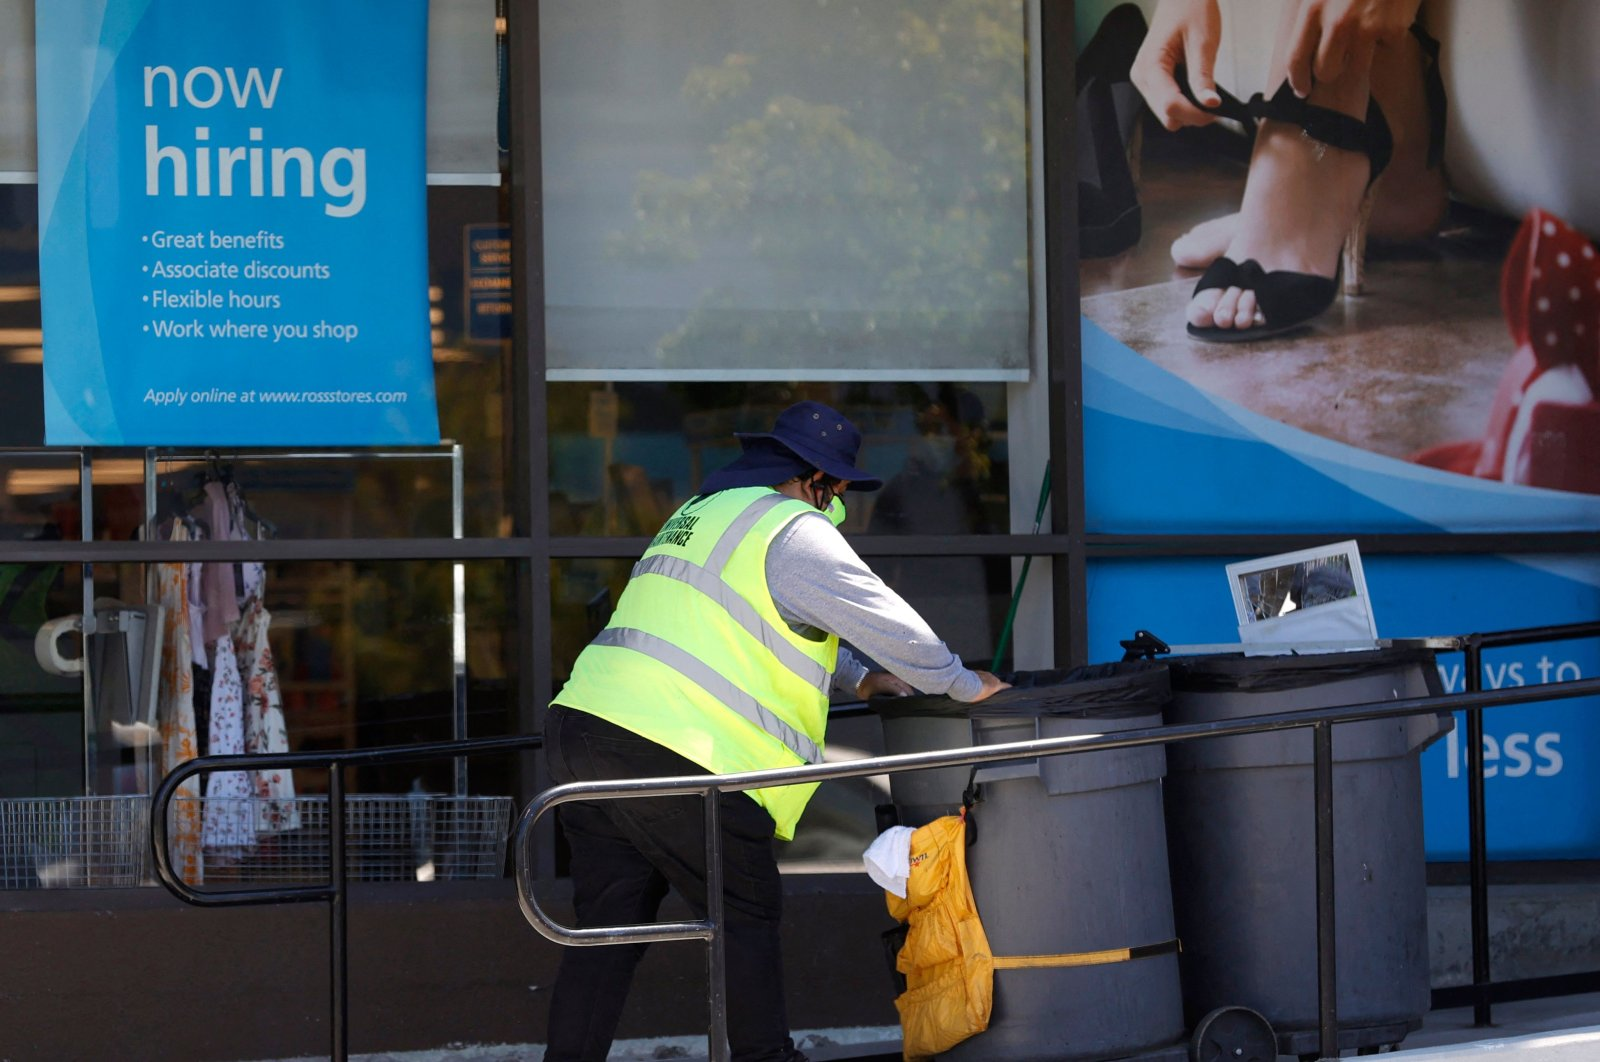 A worker pushes a cart by a 'Now Hiring' sign outside of a store in Sausalito, California, U.S., June 3, 2021. (AFP Photo)